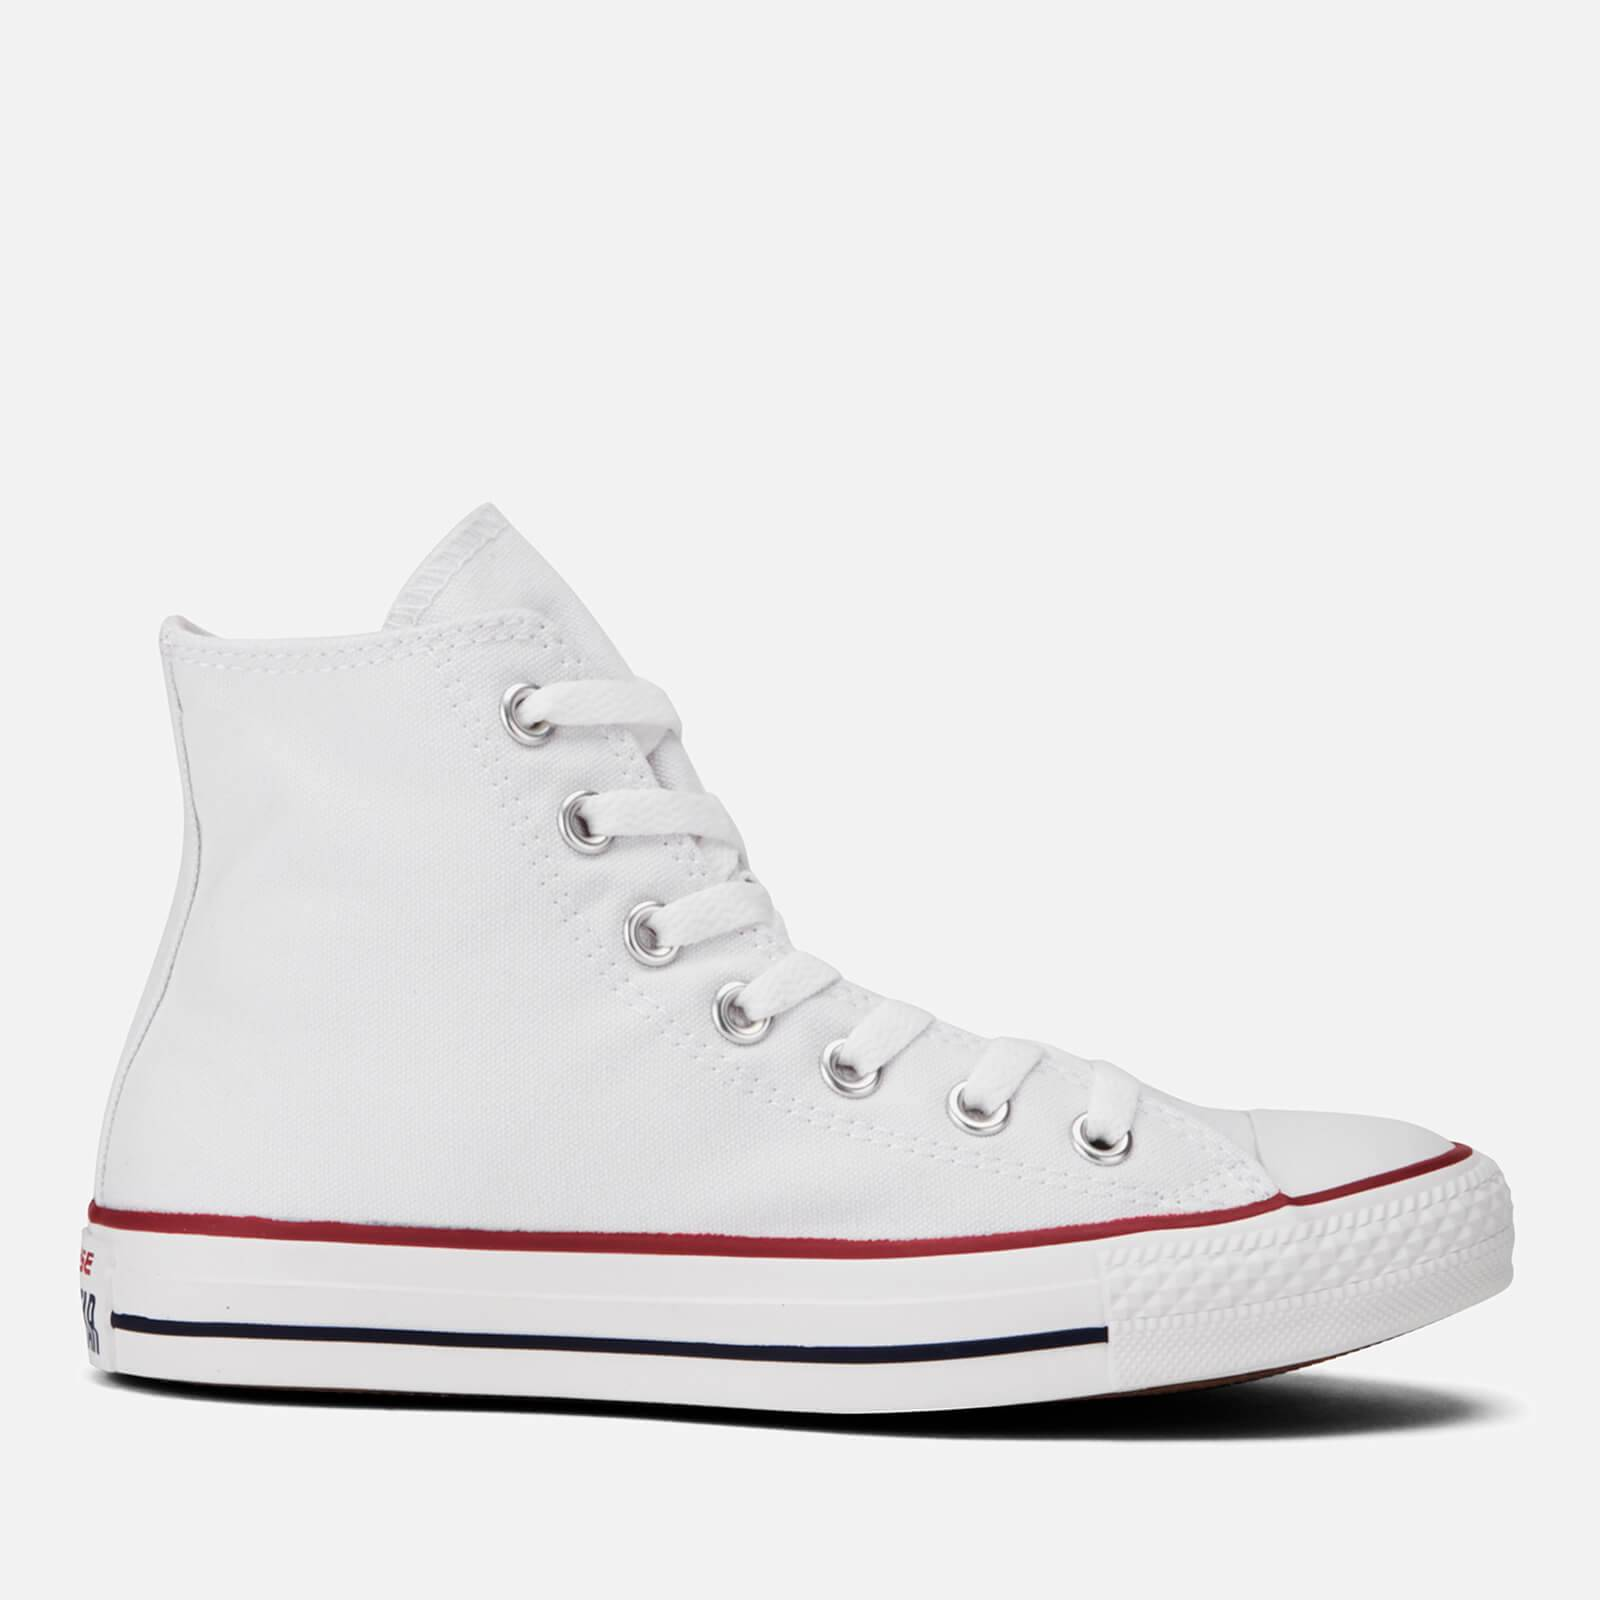 Converse Chuck Taylor All Star Hi-Top Trainers - Optical White - UK 11